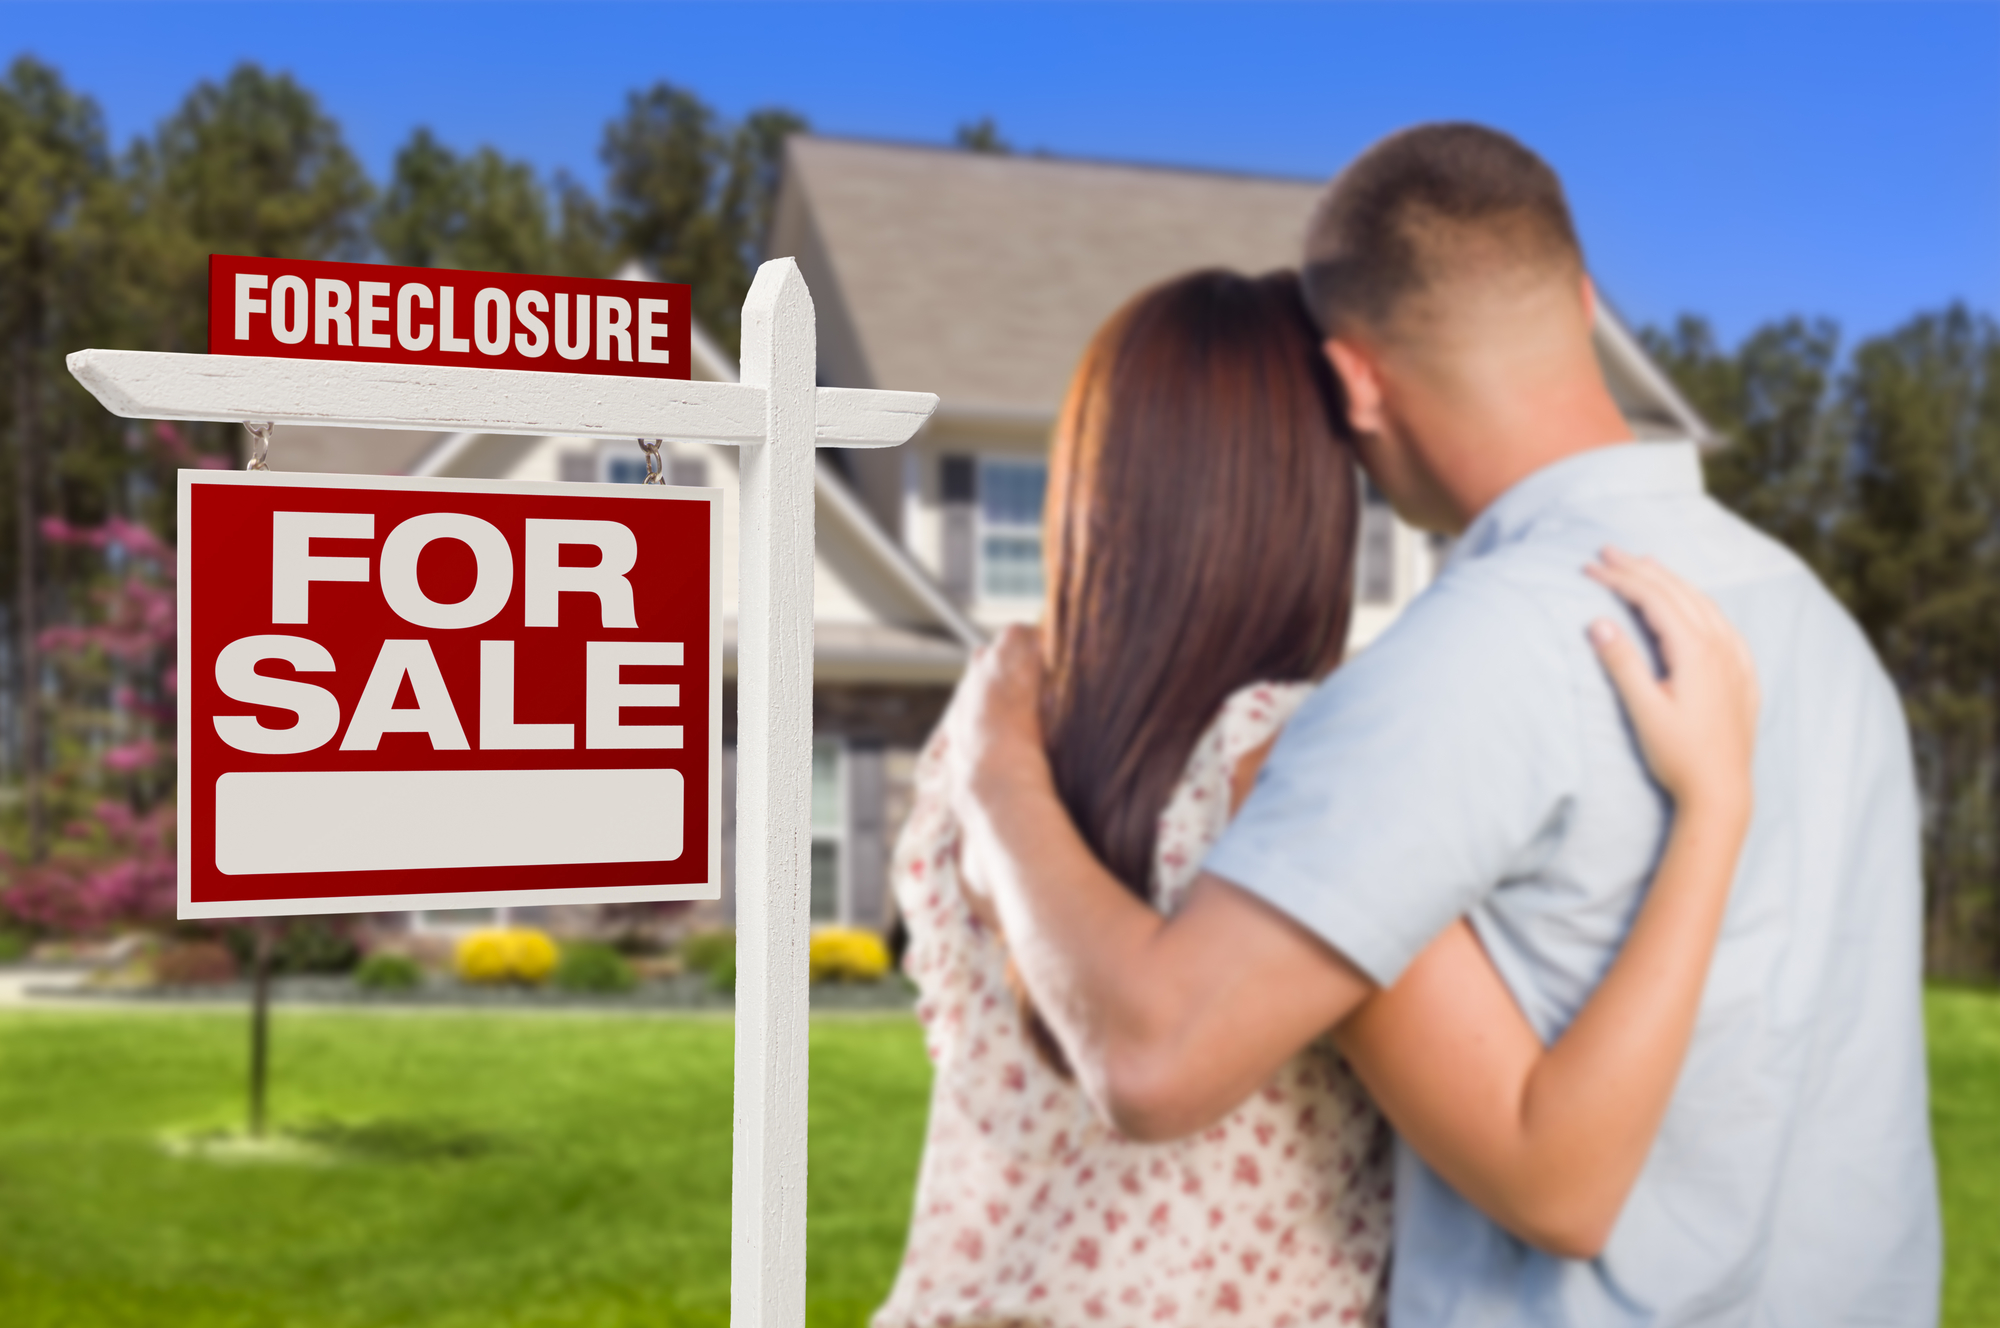 Zit Buys Homes Buying Foreclosures in Austin TX